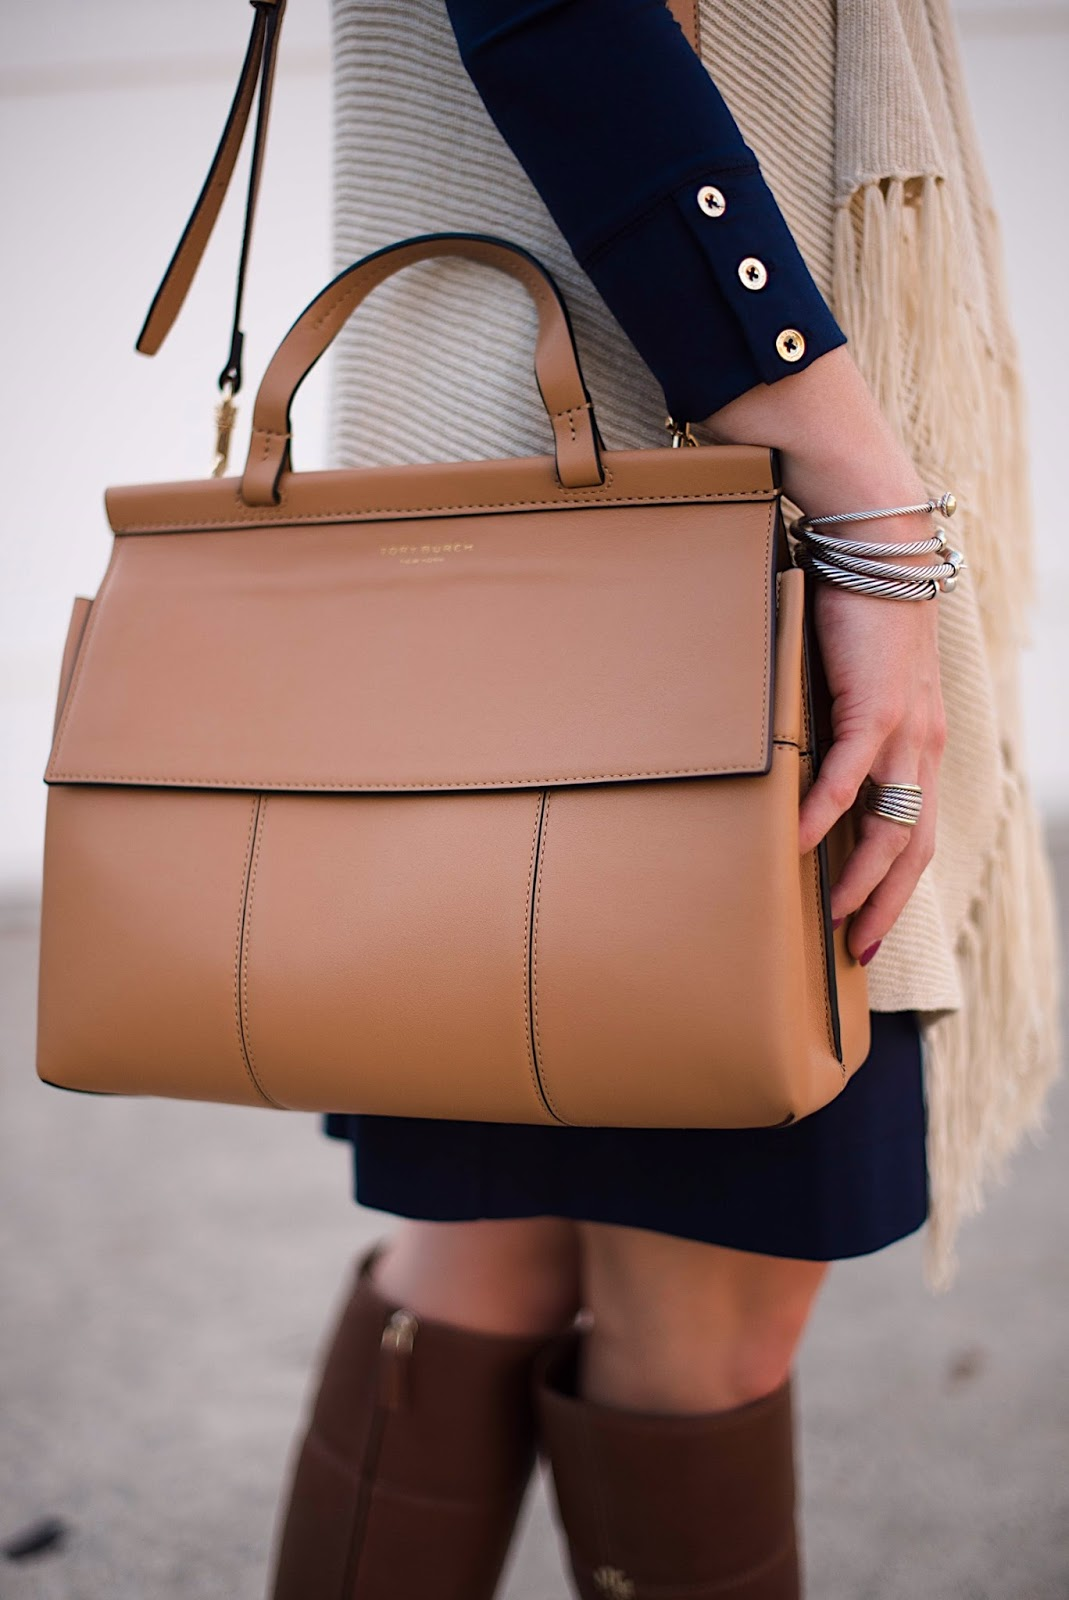 Tory Burch T Satchel - Rachel Timmerman of Something Delightful Blog